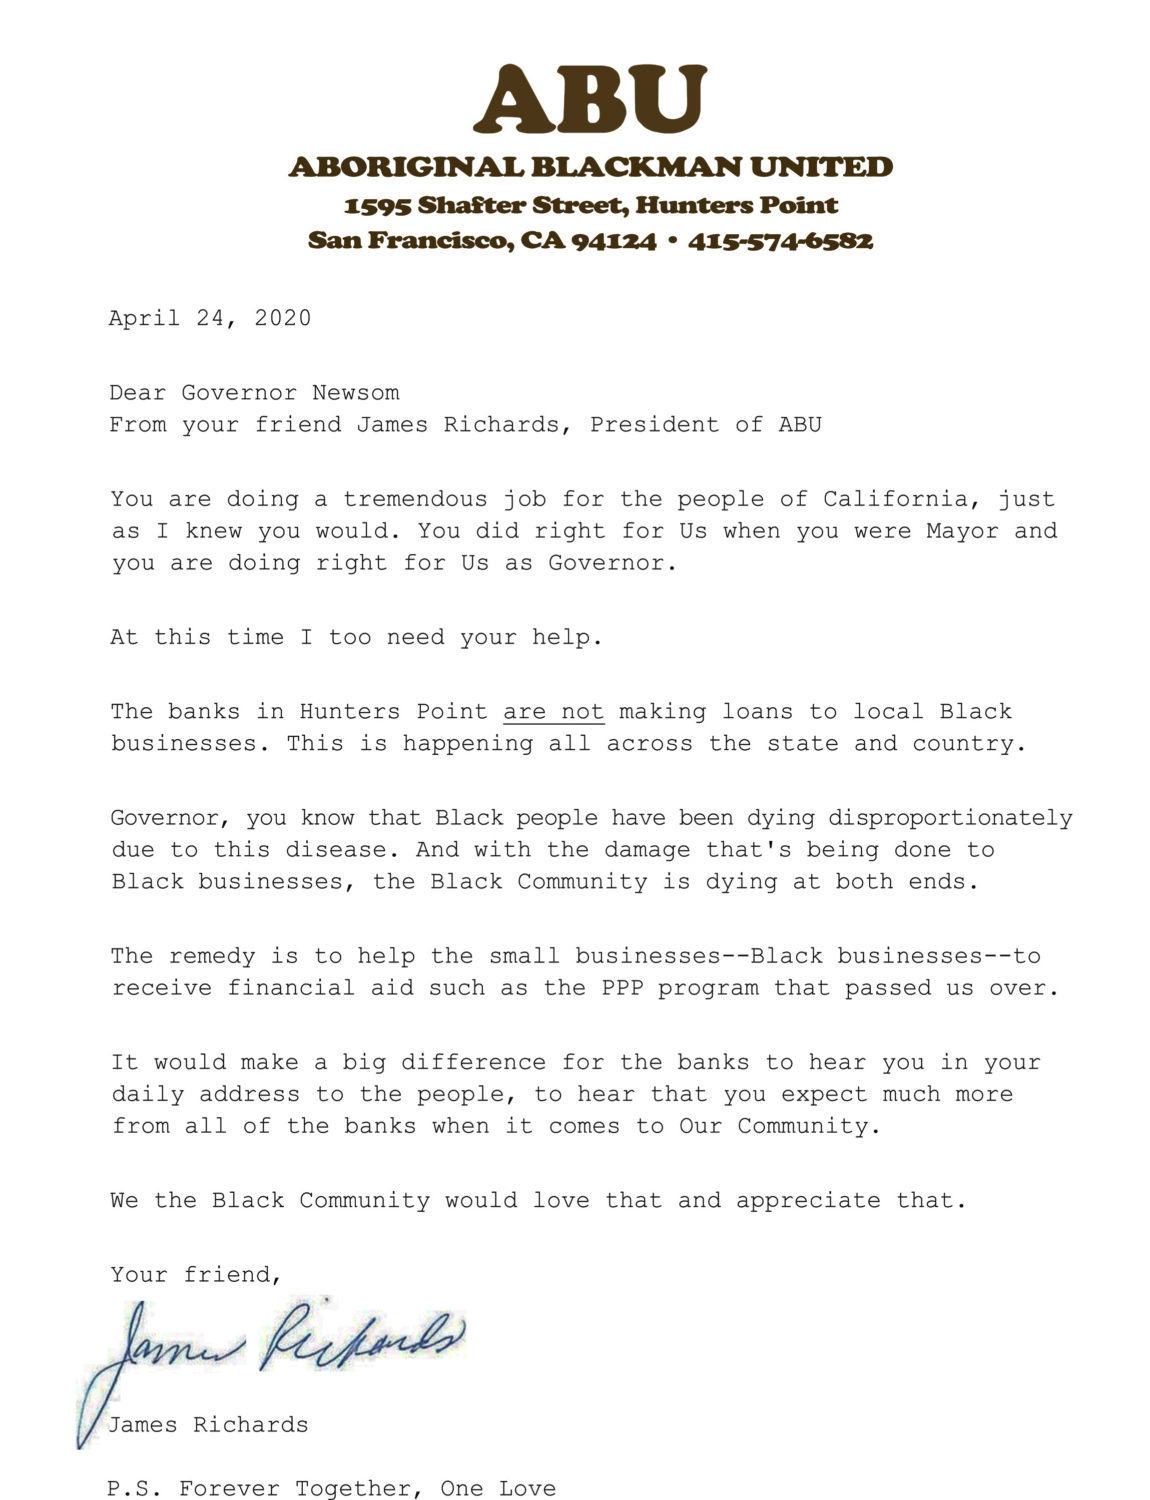 ABU-James-Richards-ltr-to-Gov.-Newsom-on-loan-justice-042420, Why bother? A question by Black small businesses during the COVID-19 crisis, Local News & Views